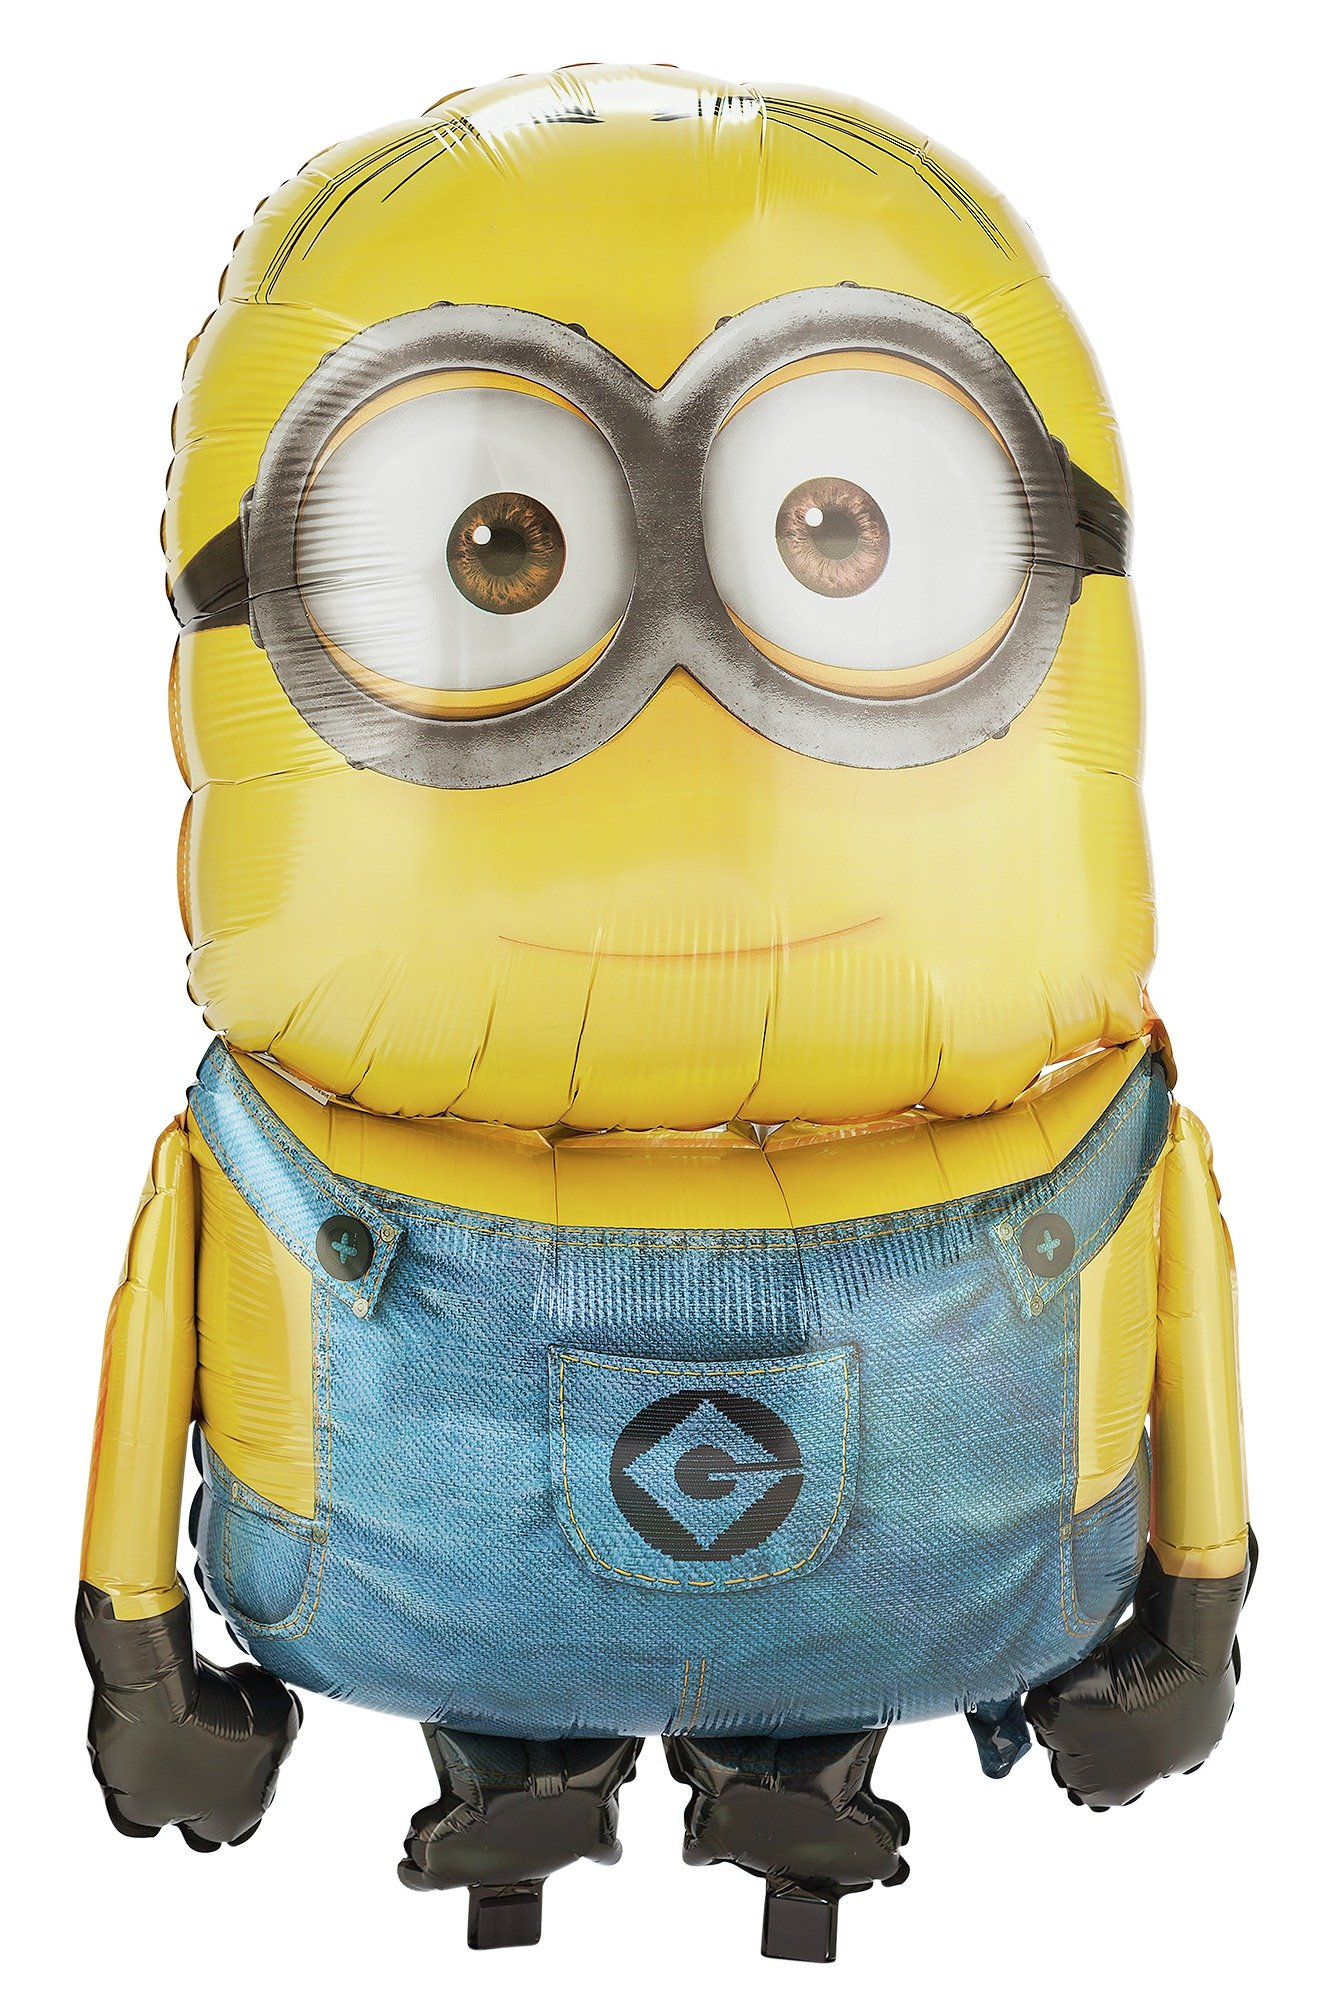 Image of Dispicable Me - Minions - AirWalker Balloon